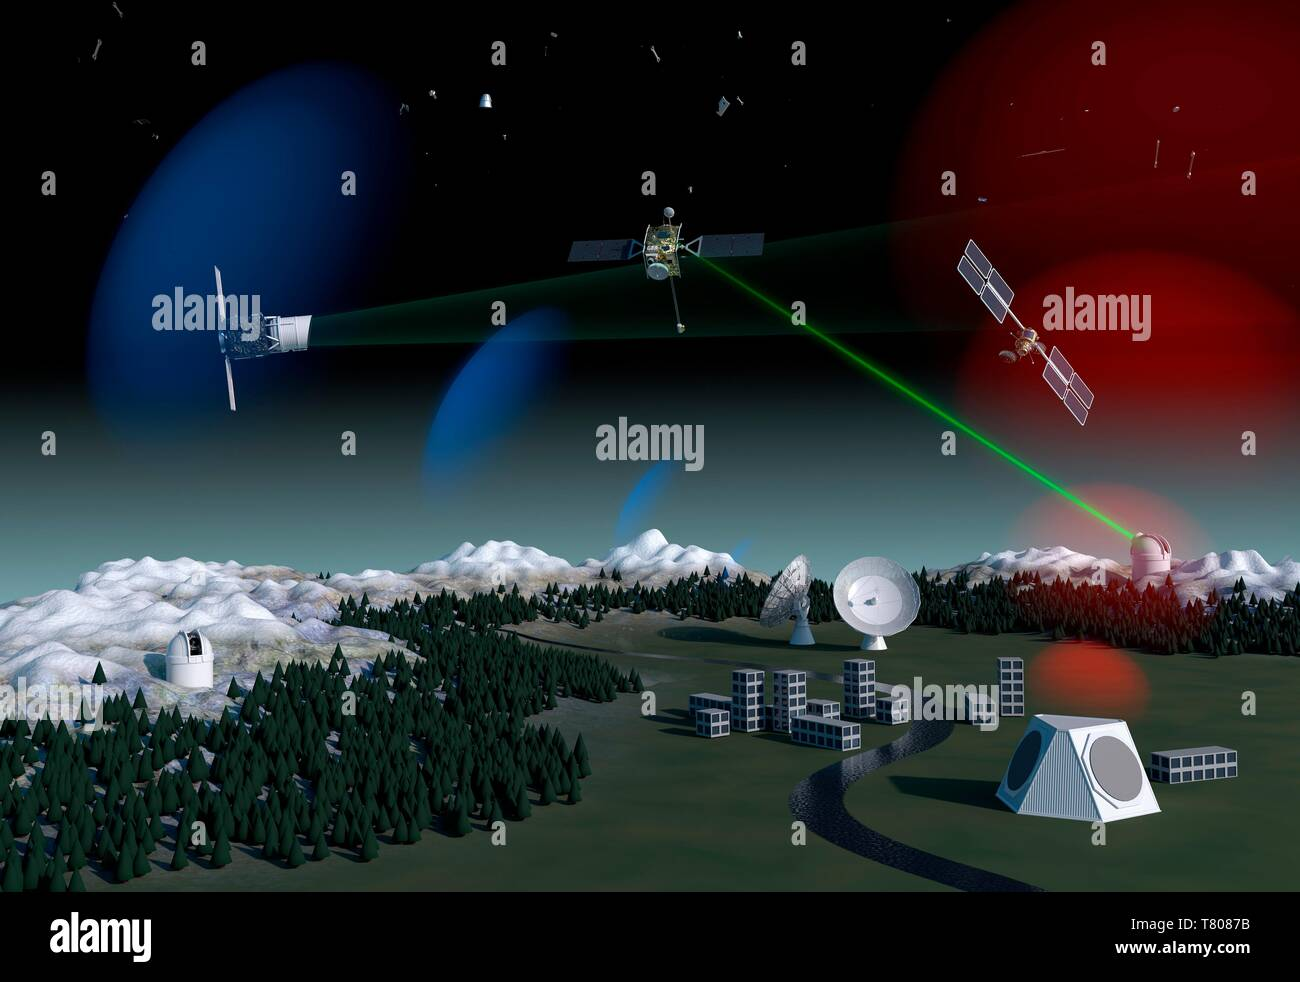 Space debris surveillance system, artwork - Stock Image